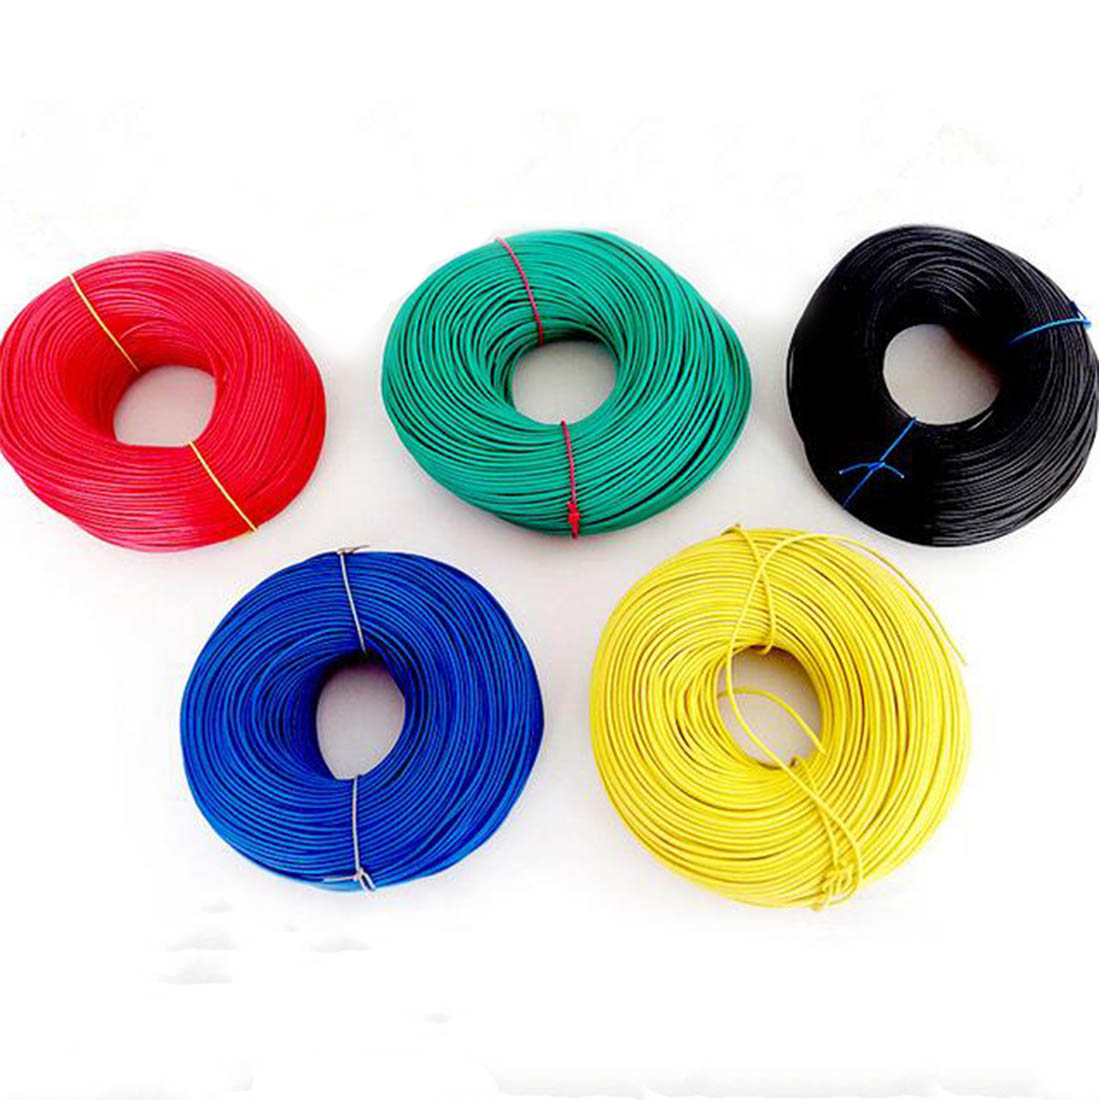 VENSTPOW 5meters/lot 15AWG RV Wire 1.5mm Multi-strand Flexible Stranded Cord Electrical Equipment Copper Core PVC Wire DIY